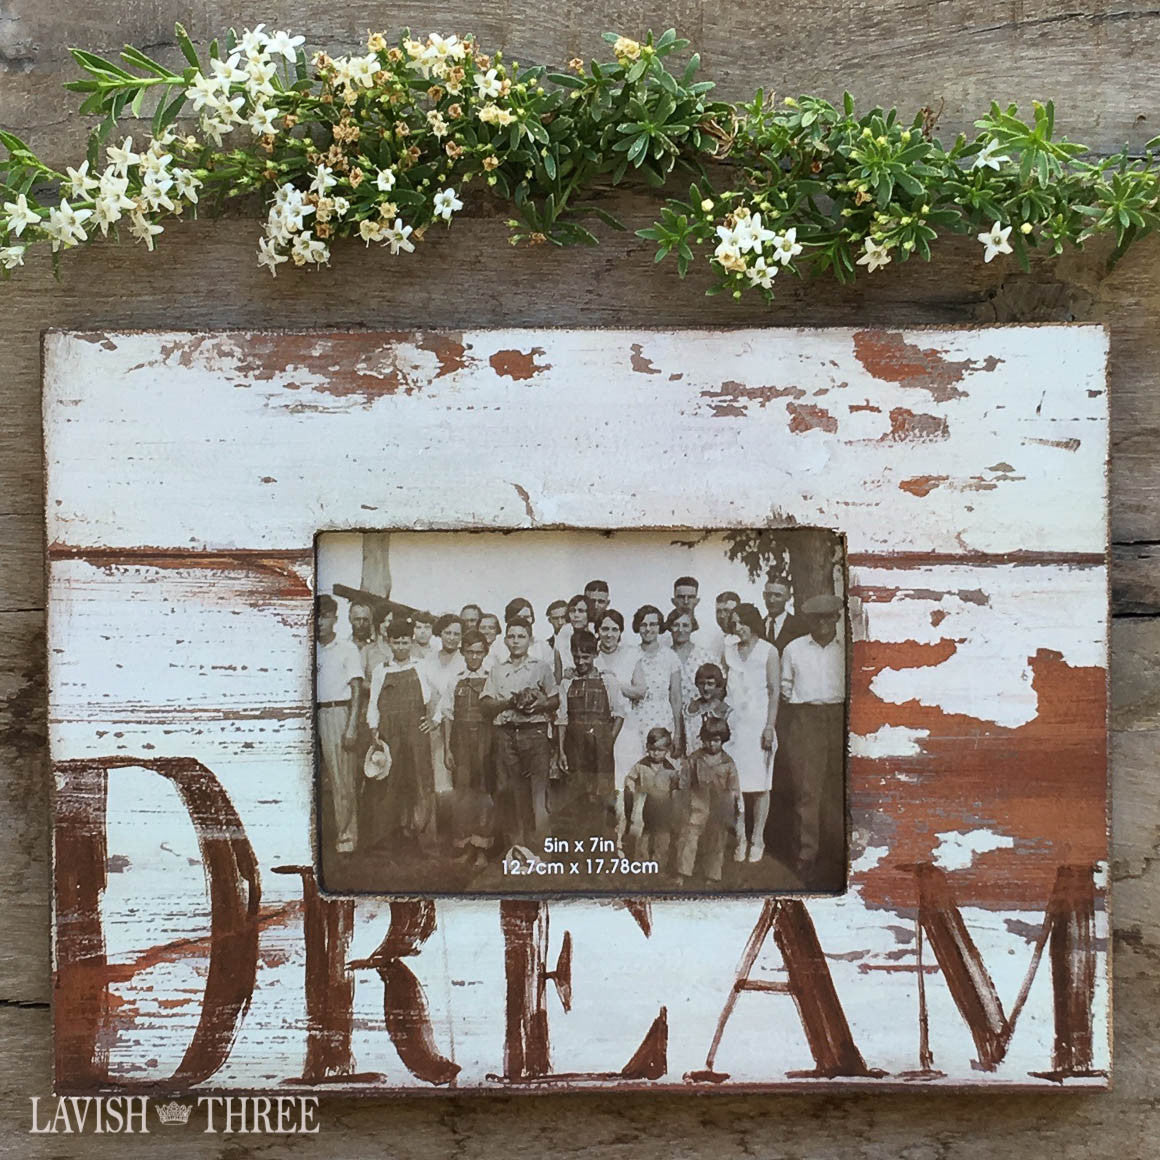 5x7 Country farmhouse distressed wood dream frame in shabby white Lavish three 3